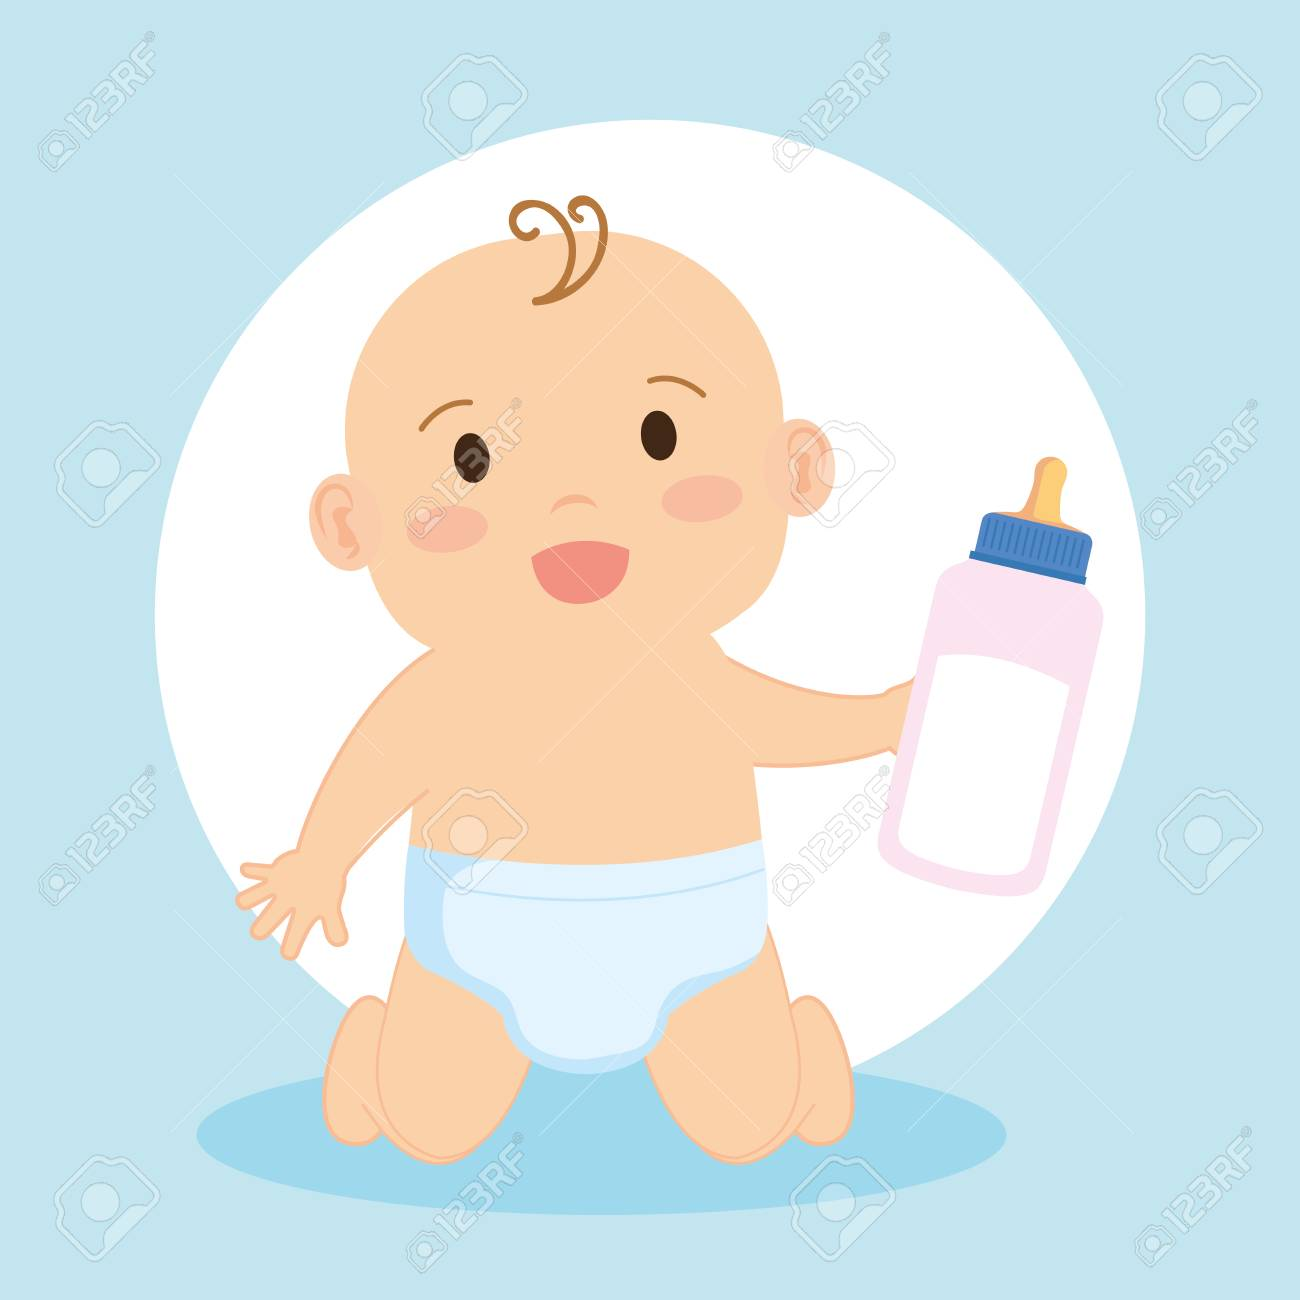 cute little baby character vector illustration design - 125597119